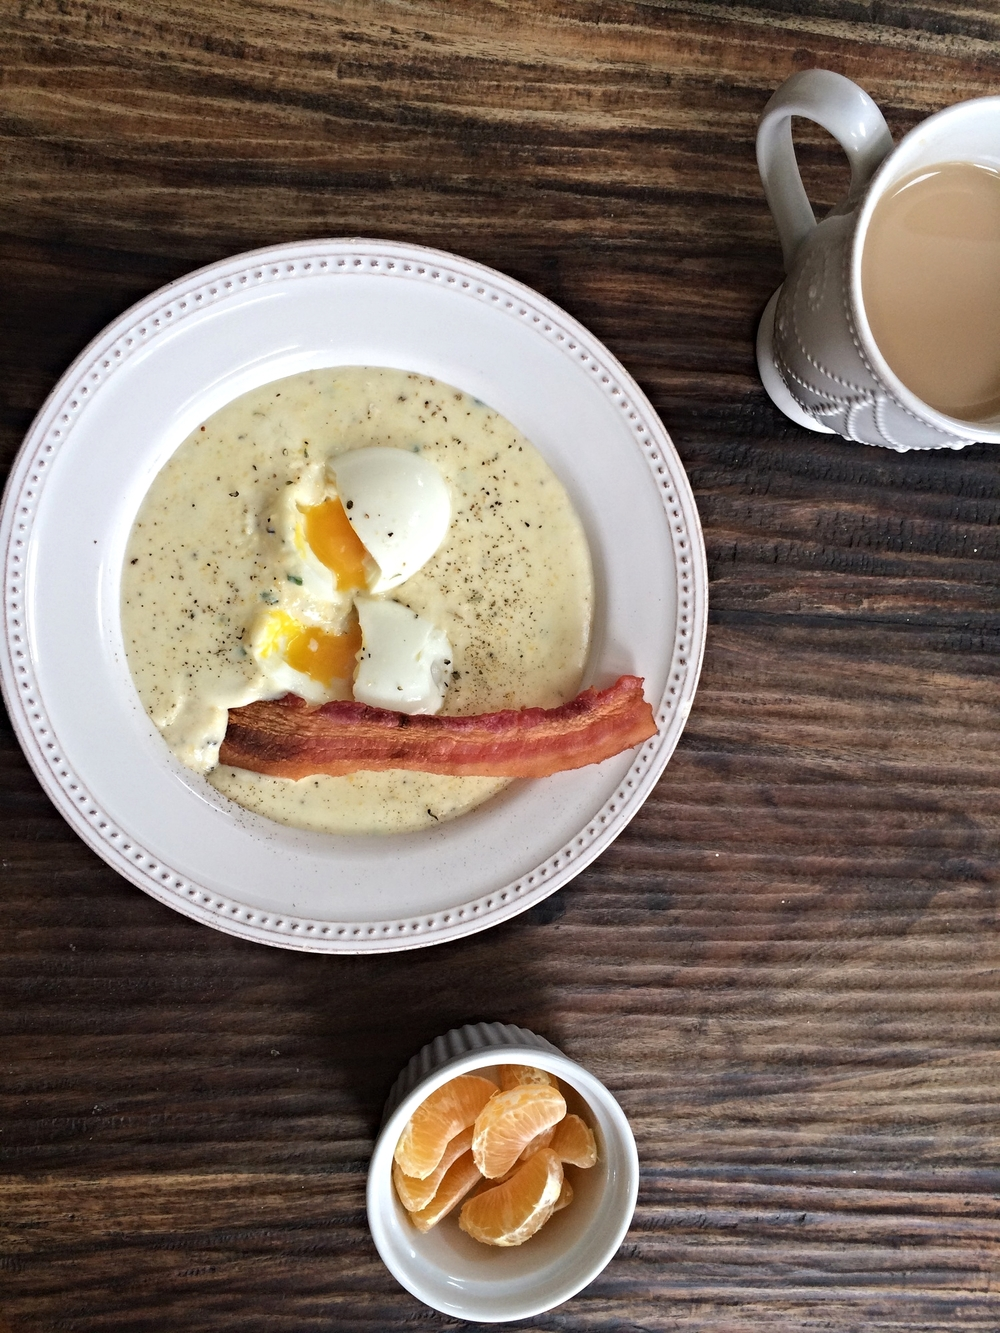 Polenta, eggs & bacon with some Earl Grey and clementines